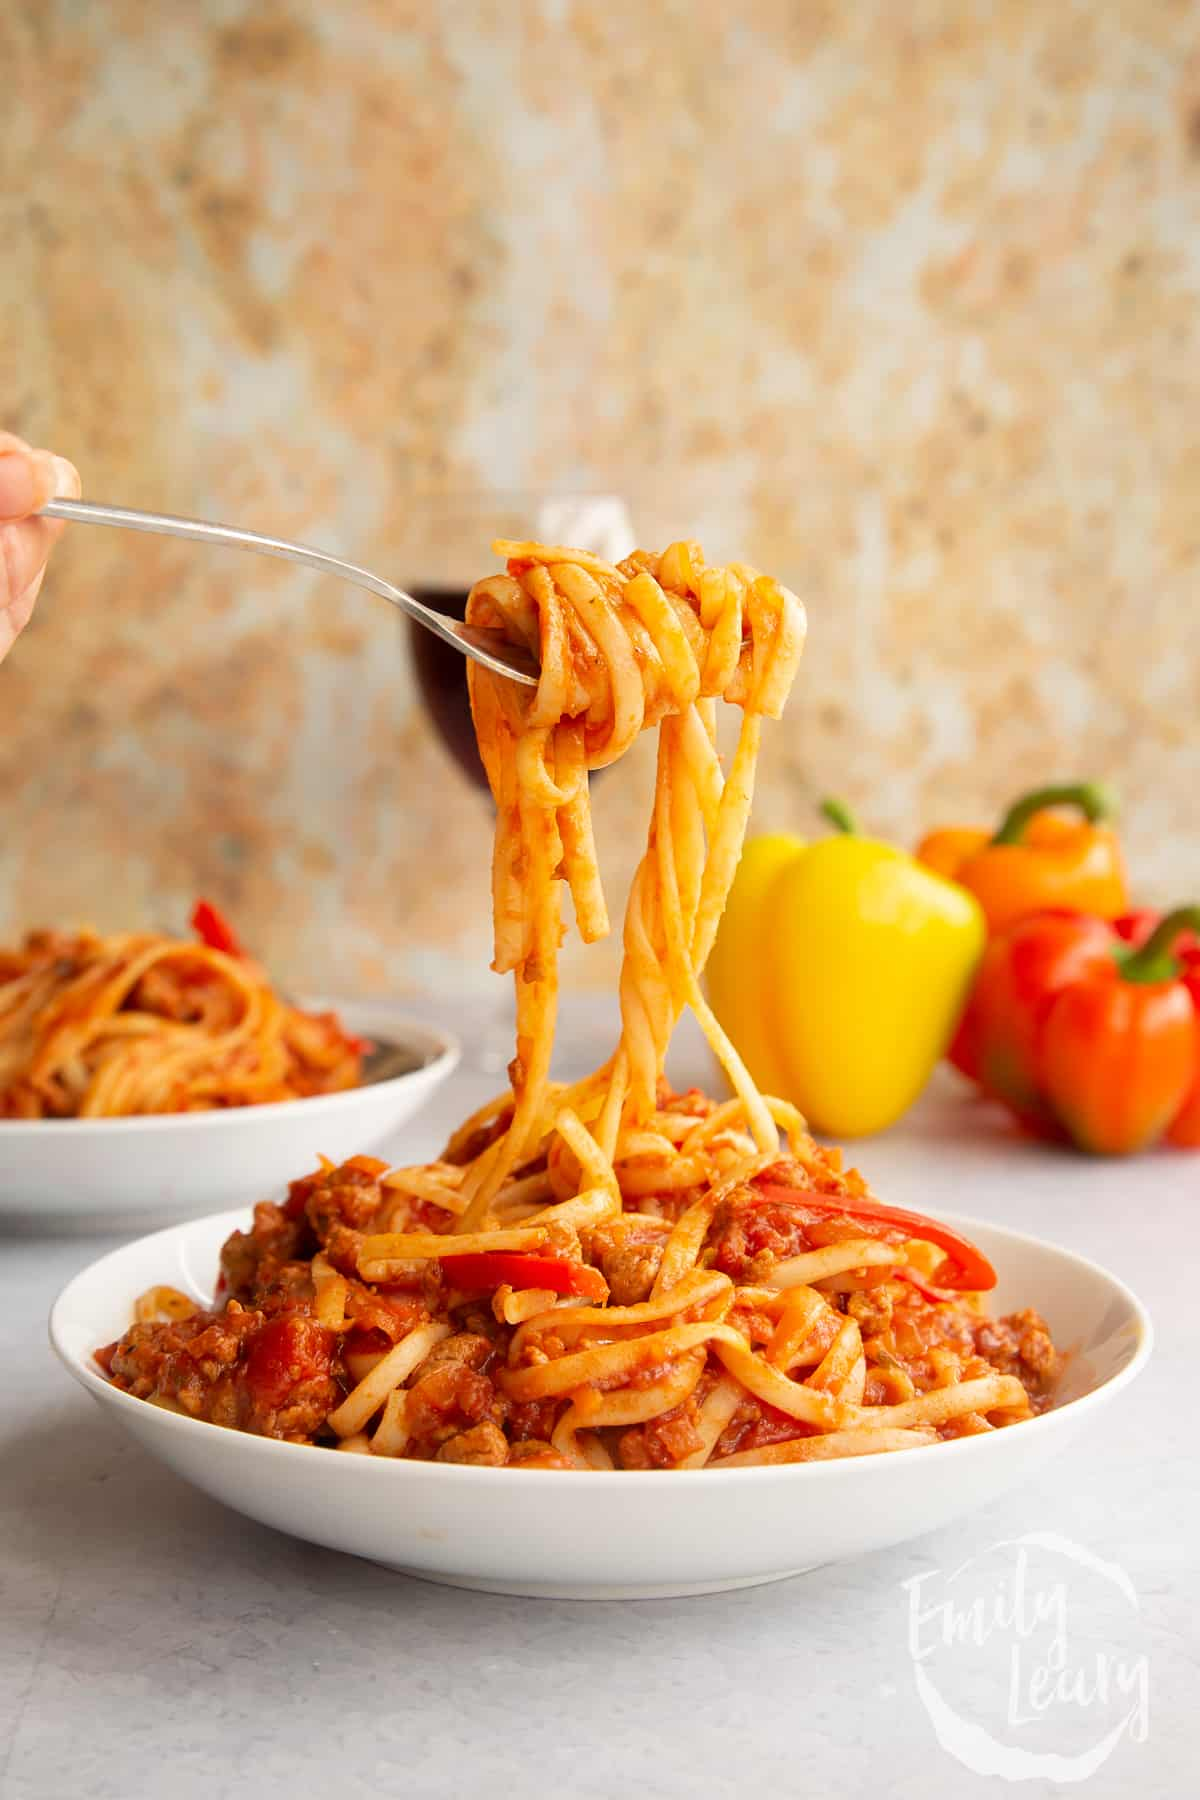 One pot vegan bolognese in a shallow white bowl. A hand lifts spaghetti from the bowl.